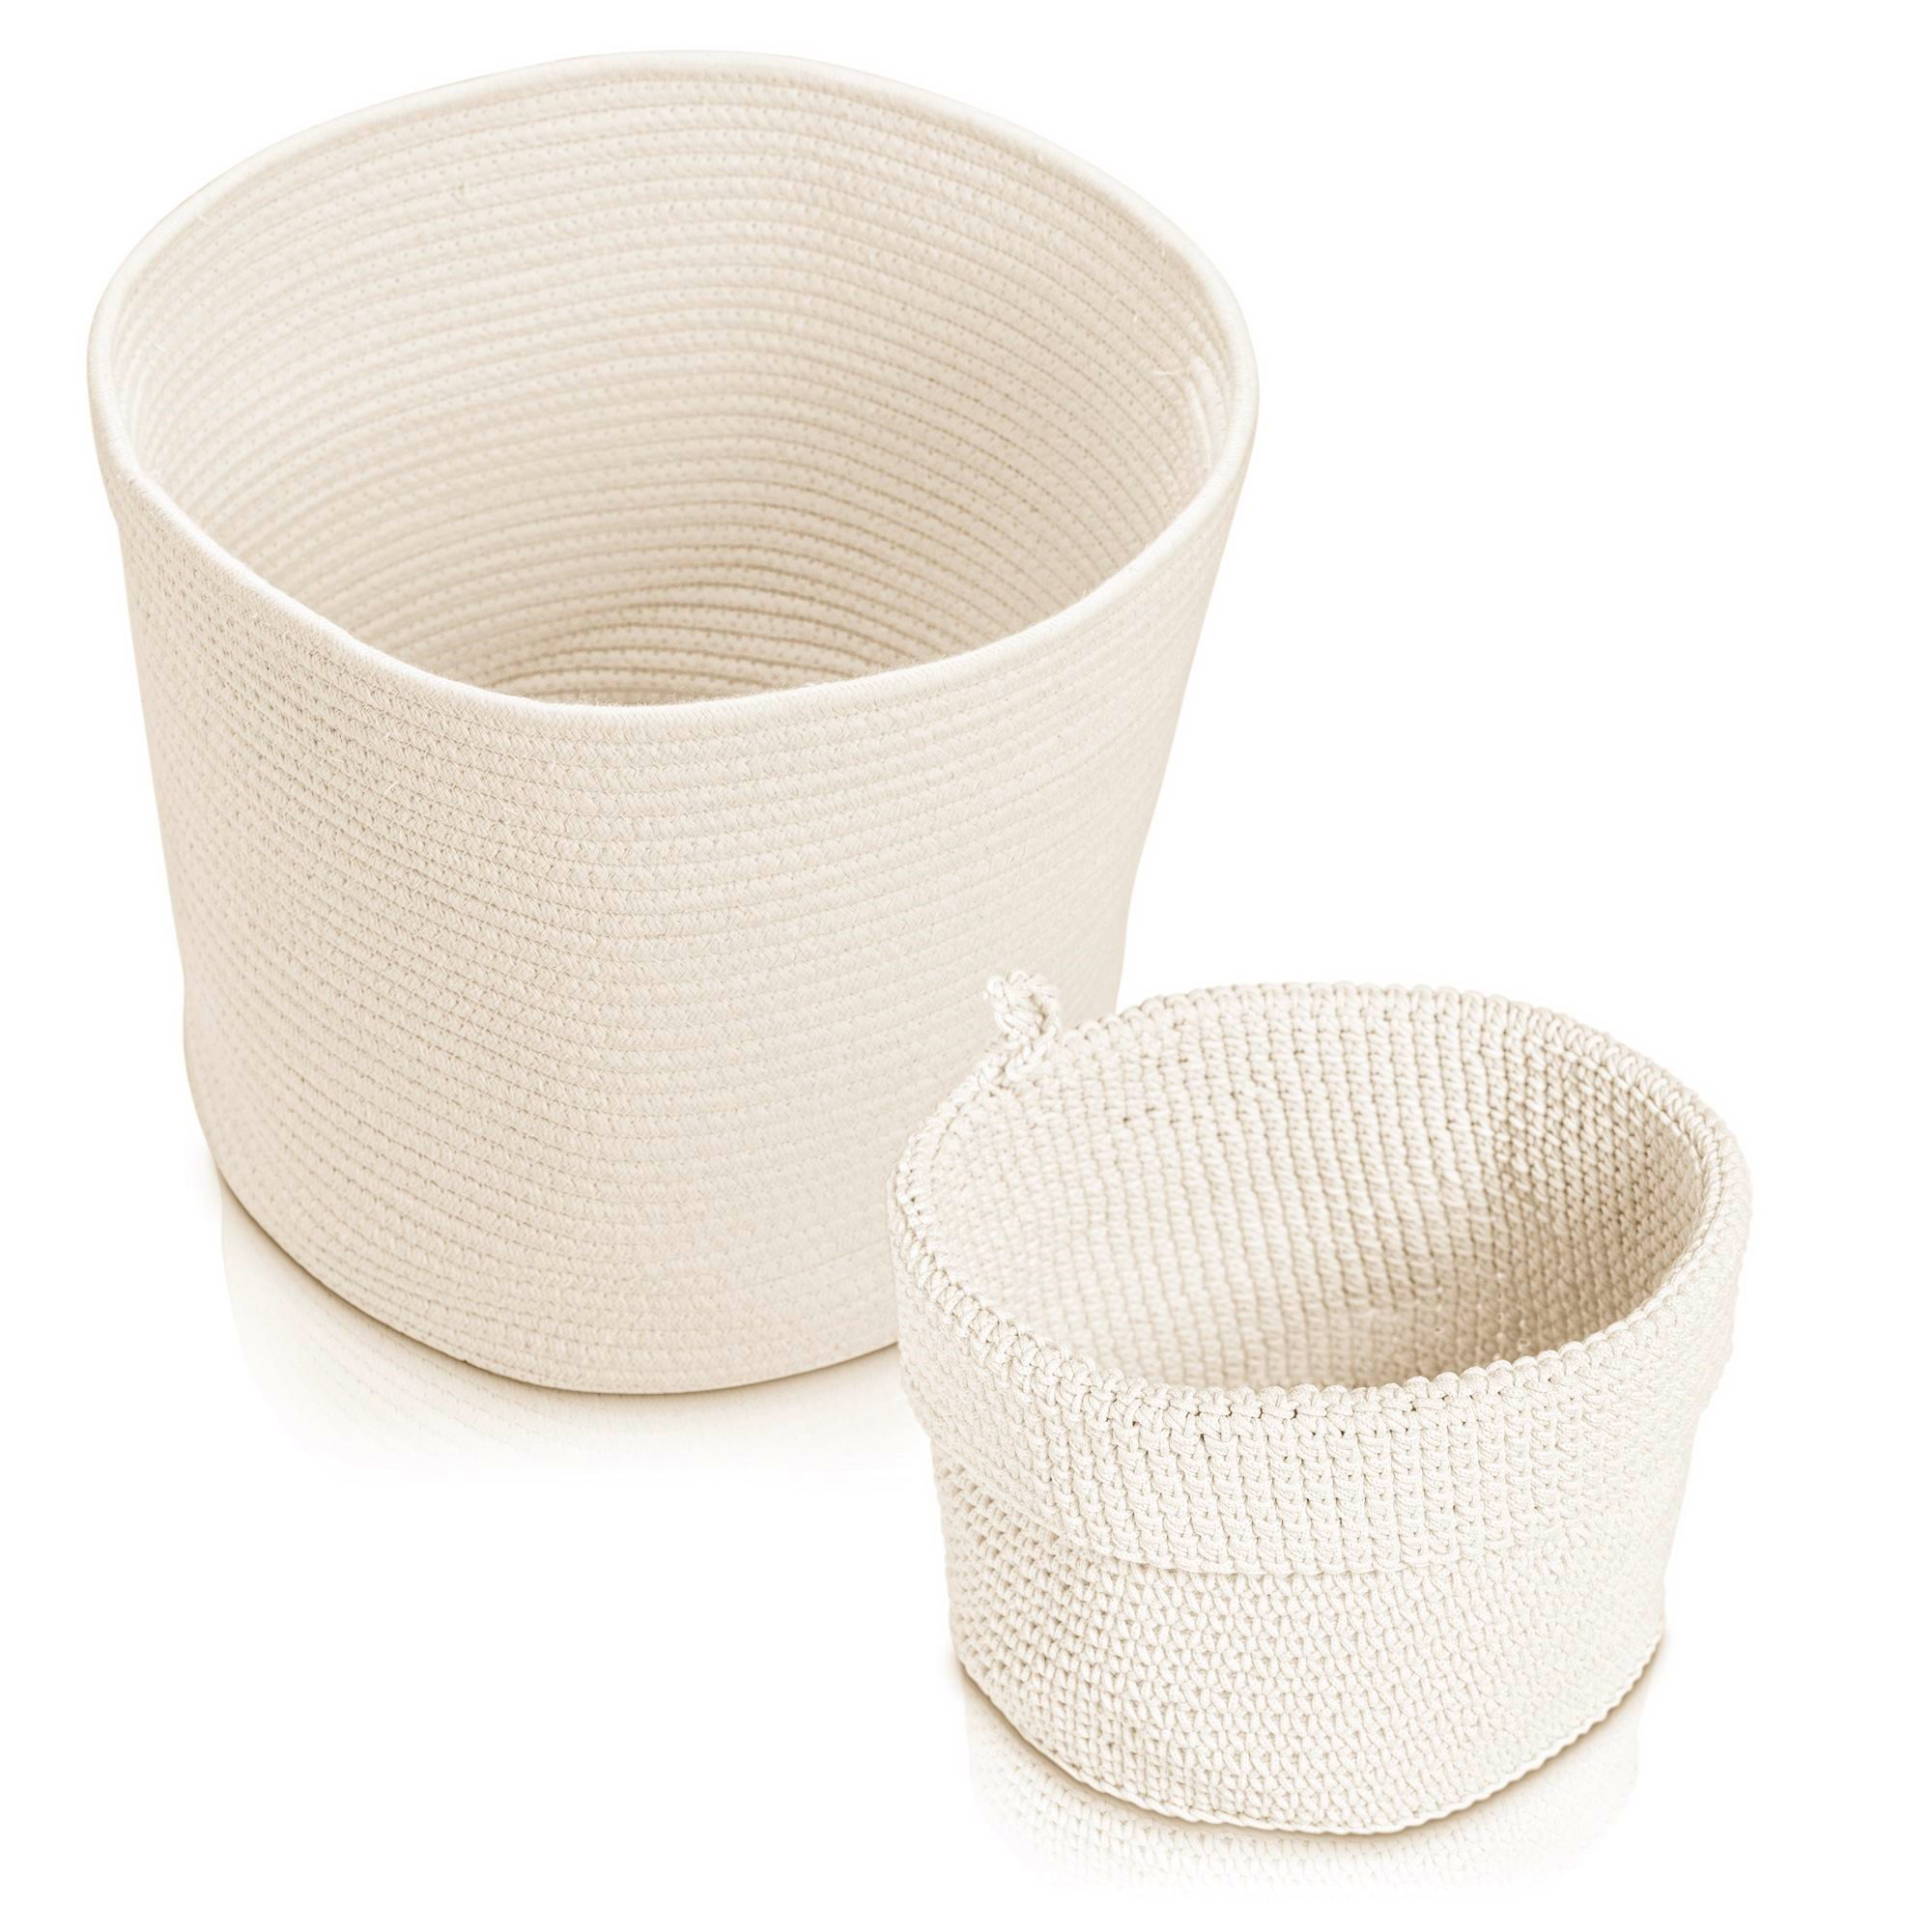 Rope Basket Organizer Combo Set - Eco-Friendly, Natural Color and Tightly Woven - Medium Size 15 x 13 inch Cotton Rope Basket, with Bonus 8 x 6 inch Nylon Rope Basket - Mold Resistant and Decorative by Helpful Picks